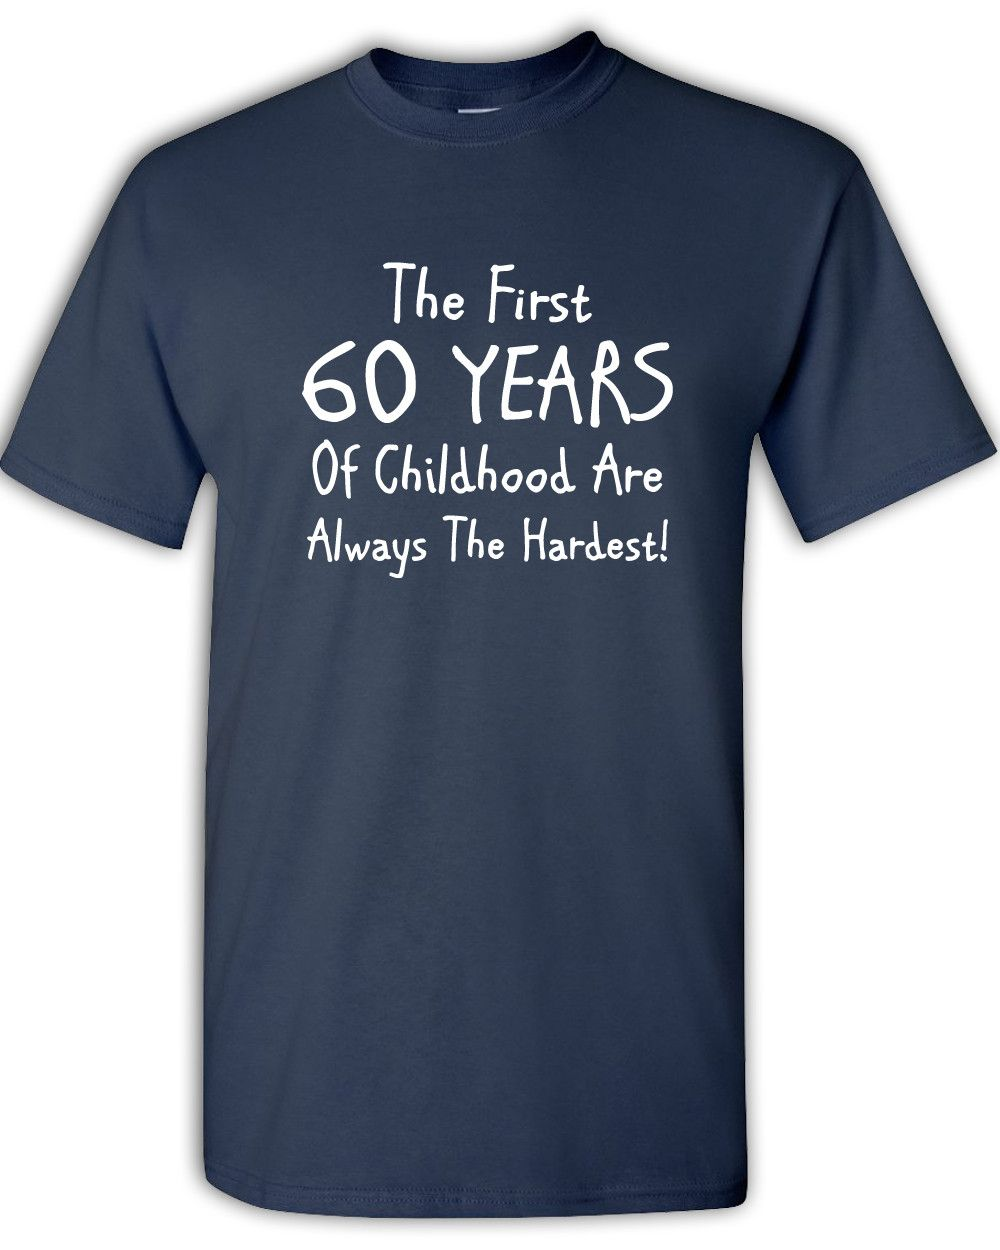 61bebc3be 60th Birthday, The First 60 Years Of Childhood Are The Hardest in ...